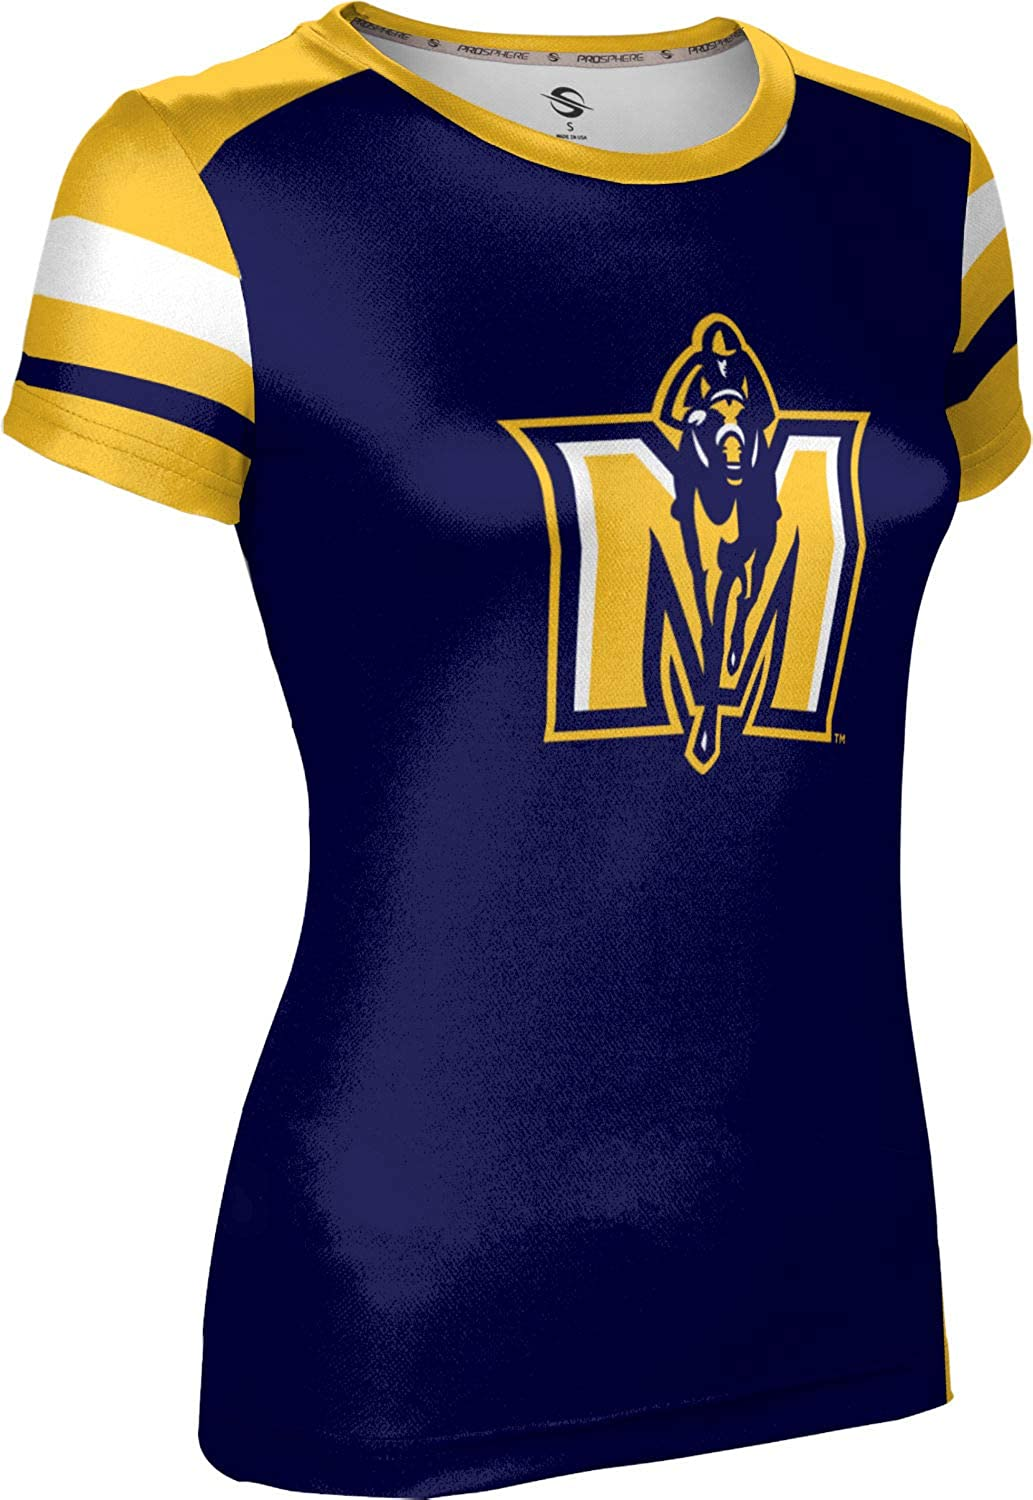 Old School ProSphere Murray State University Girls Performance T-Shirt